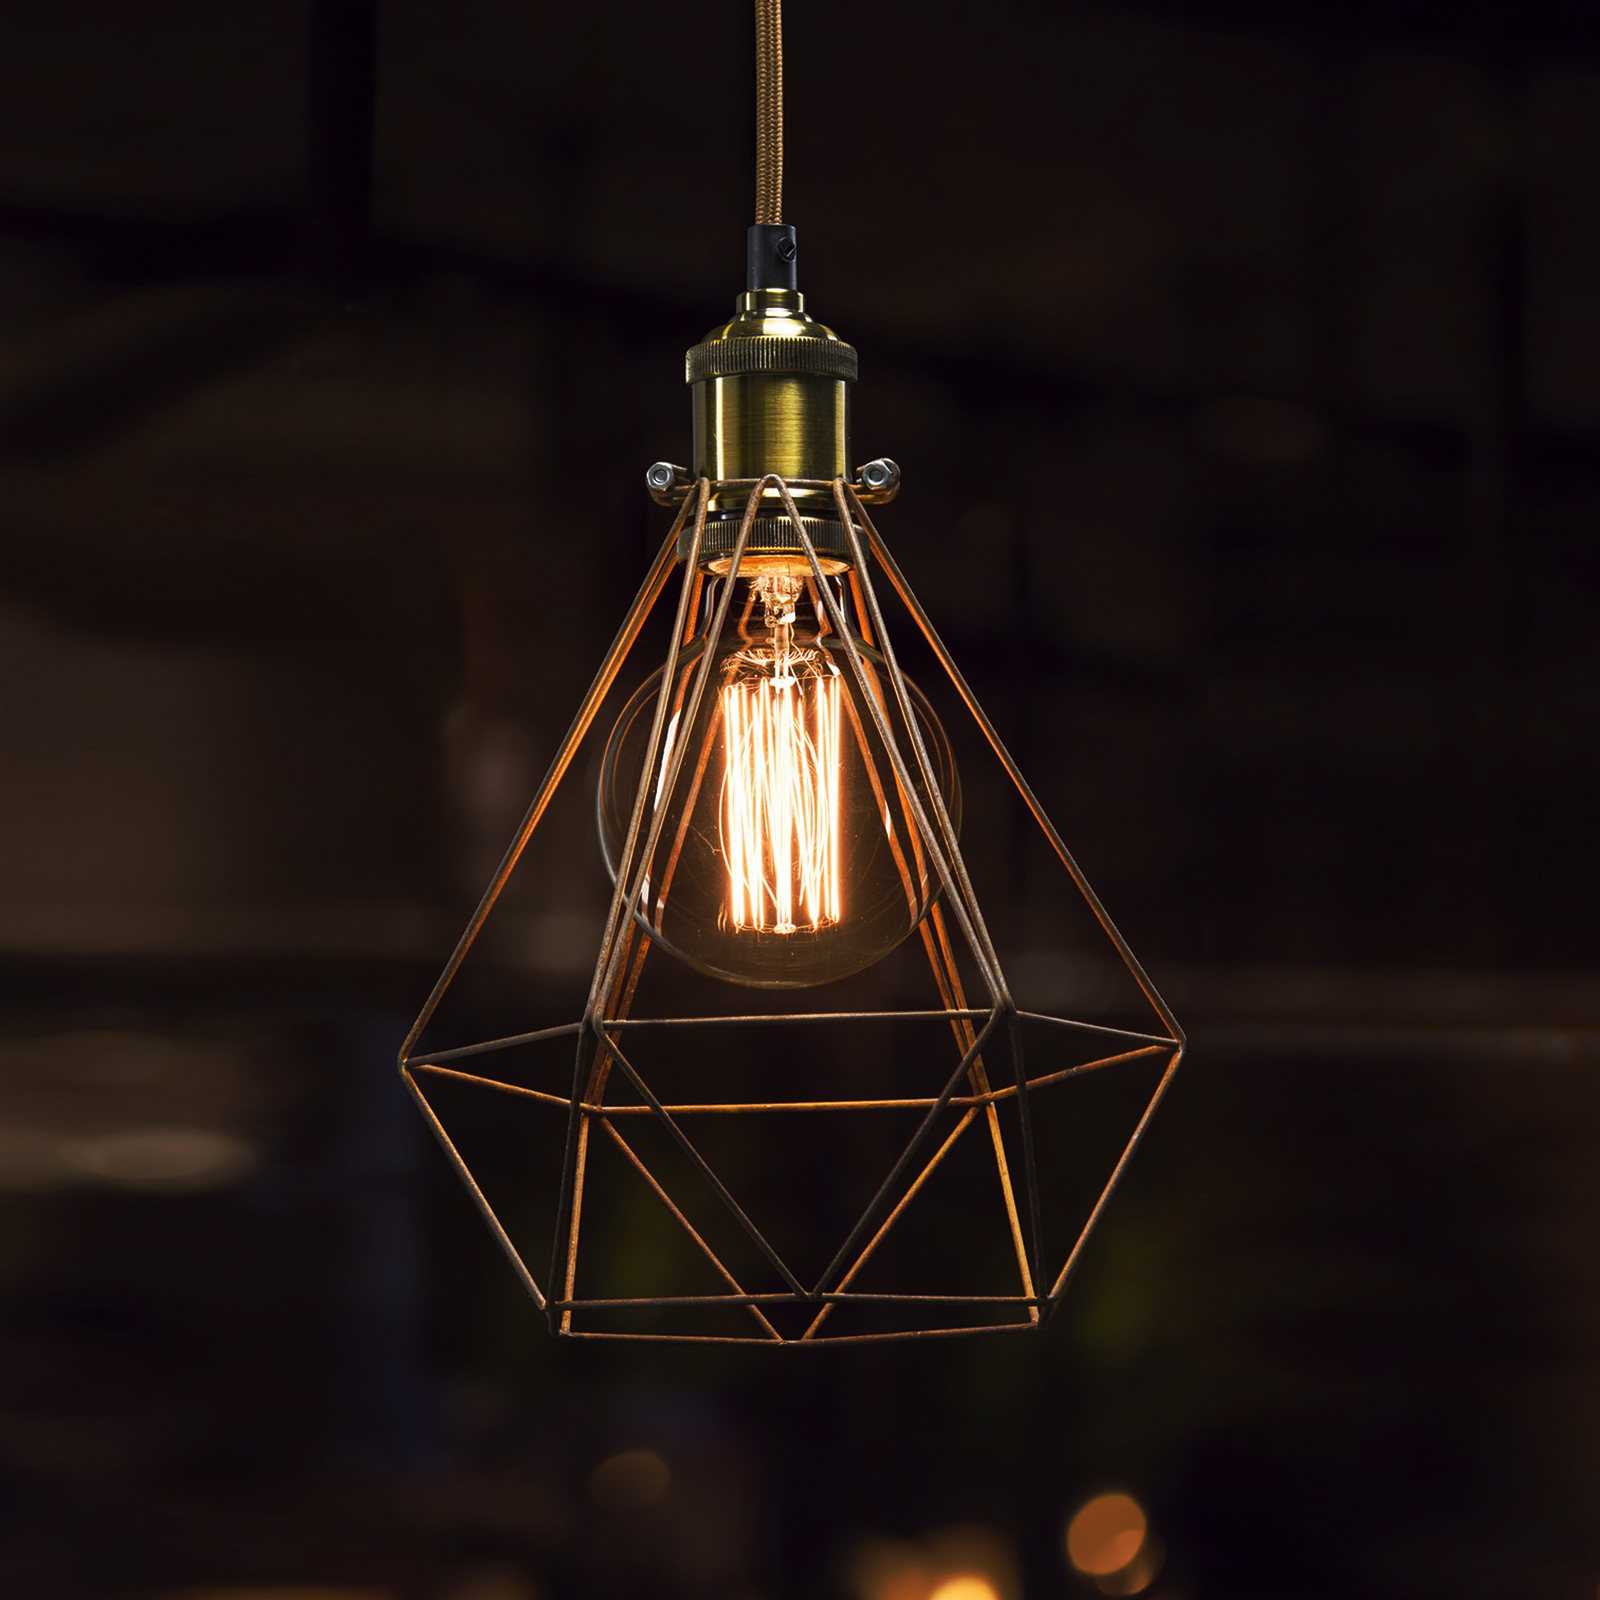 the place with the vintage lighting touch - goodworksfurniture